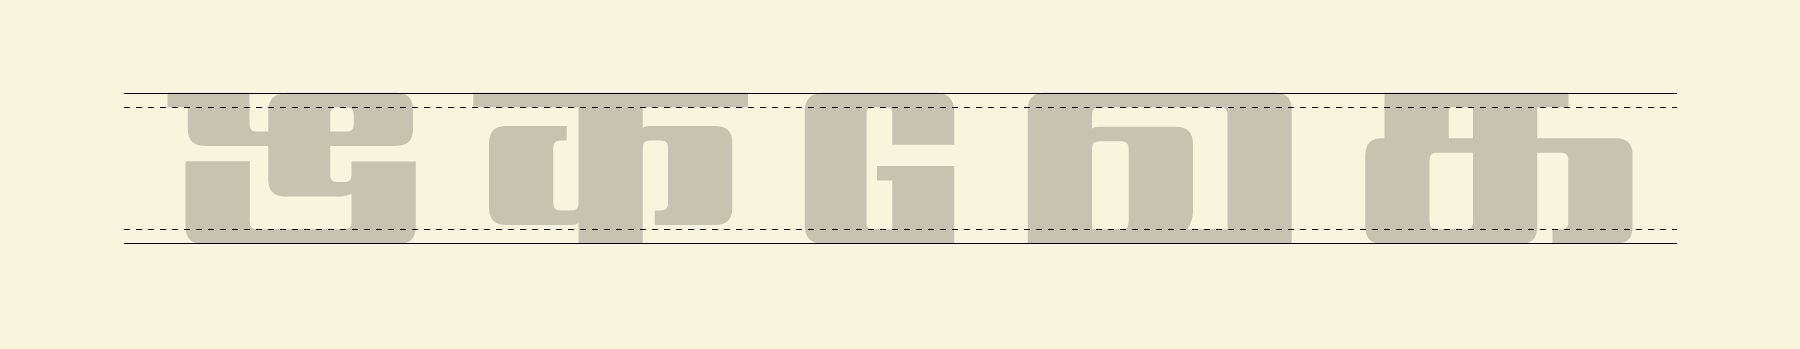 The Director Multi-script Series | Indian Type Foundry